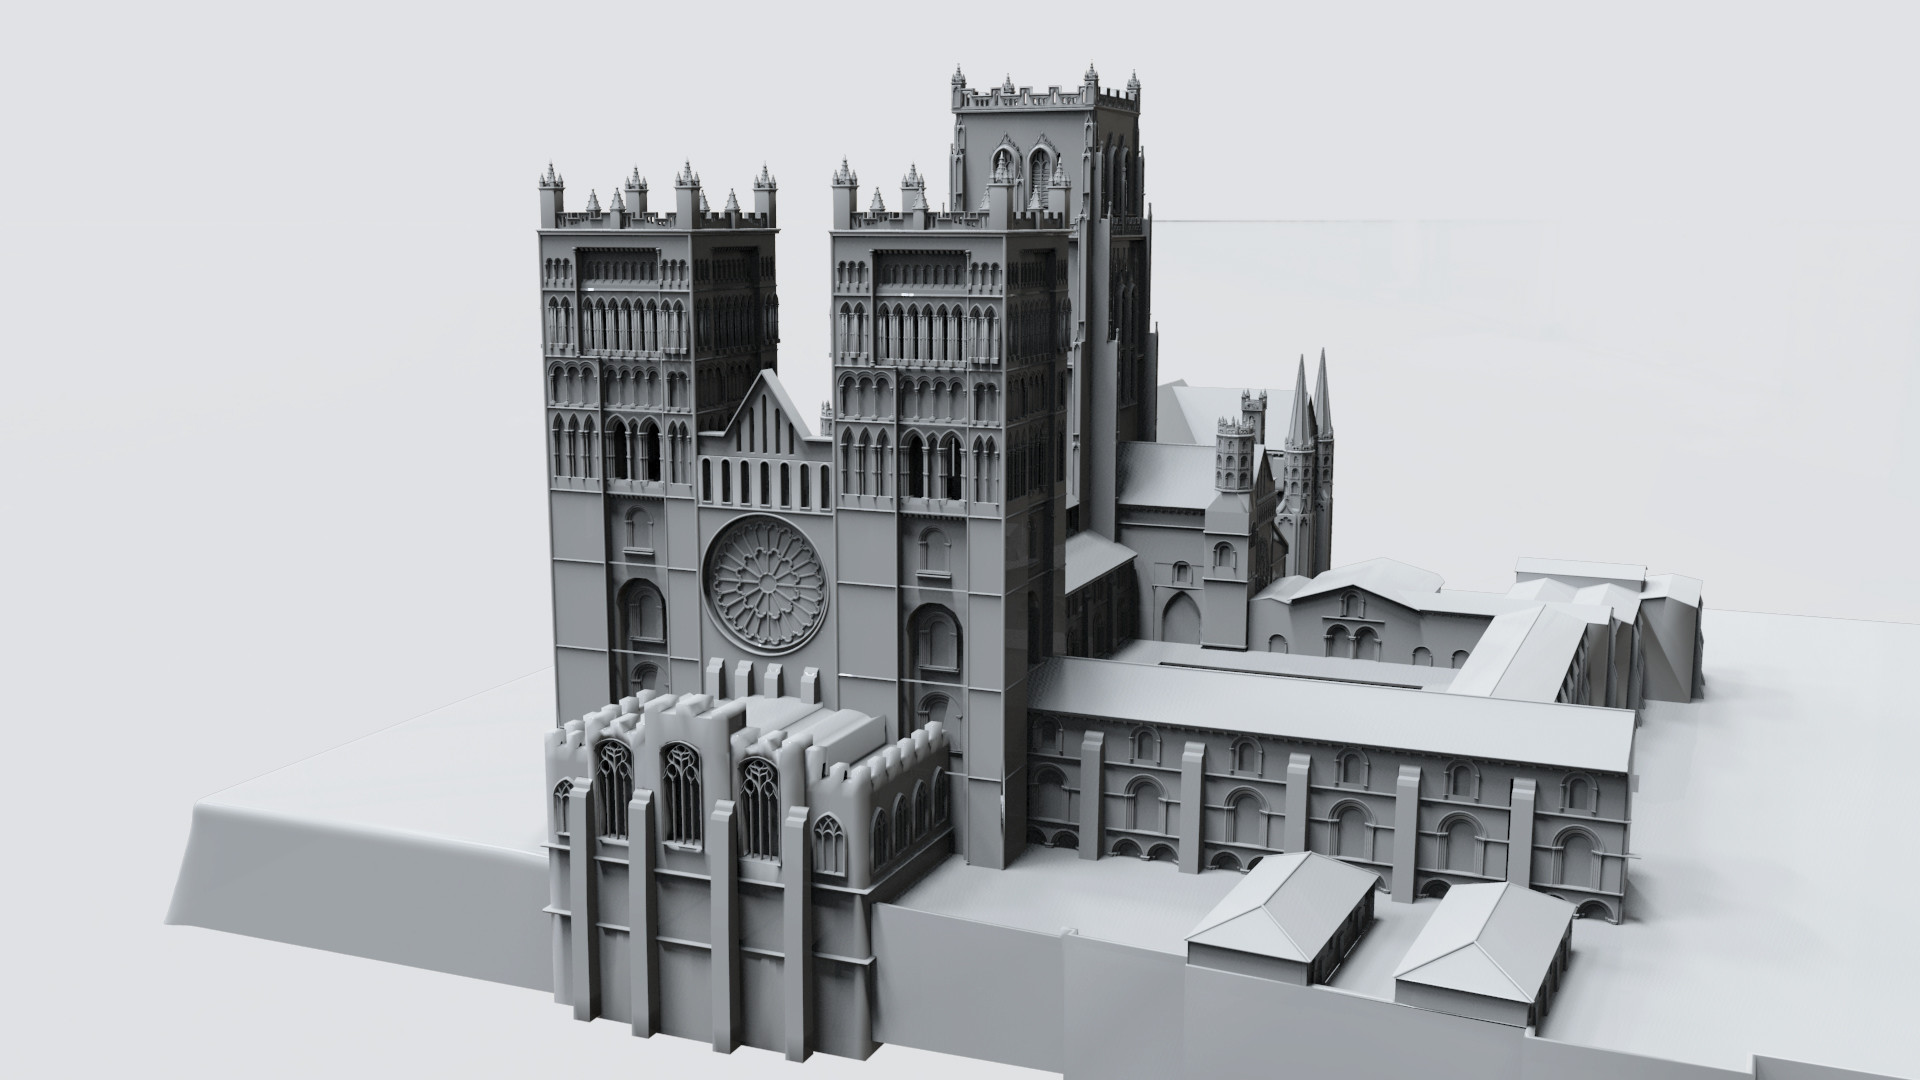 Durham Cathedral Exterior - done for FXPHD course years back